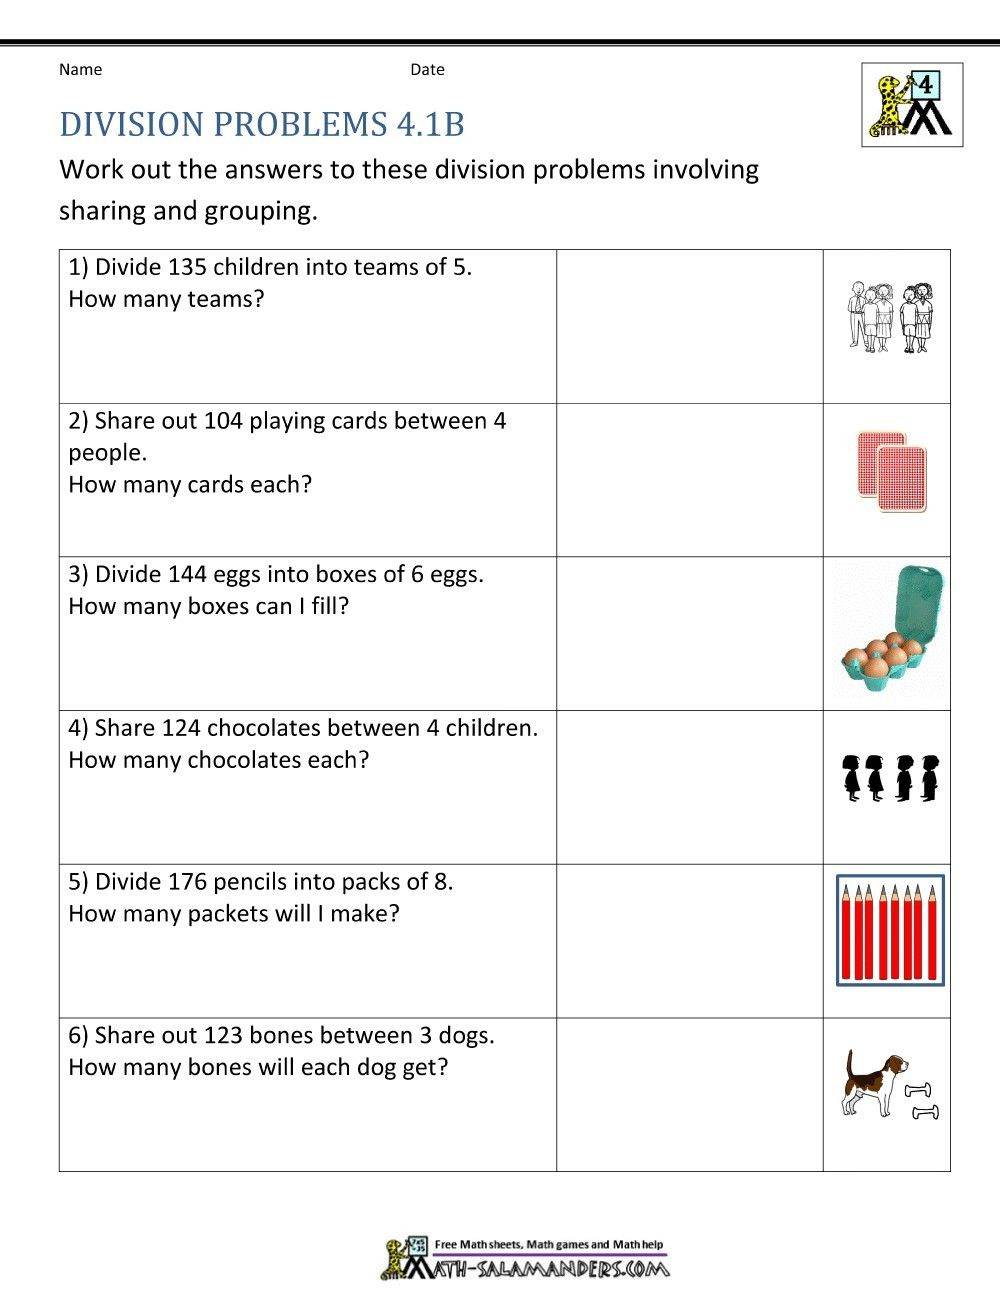 Predownload: Pin By Claudia Schianchi On Problemi Division Worksheets Division Worksheets Grade 4 Free Math Worksheets [ 1294 x 1000 Pixel ]